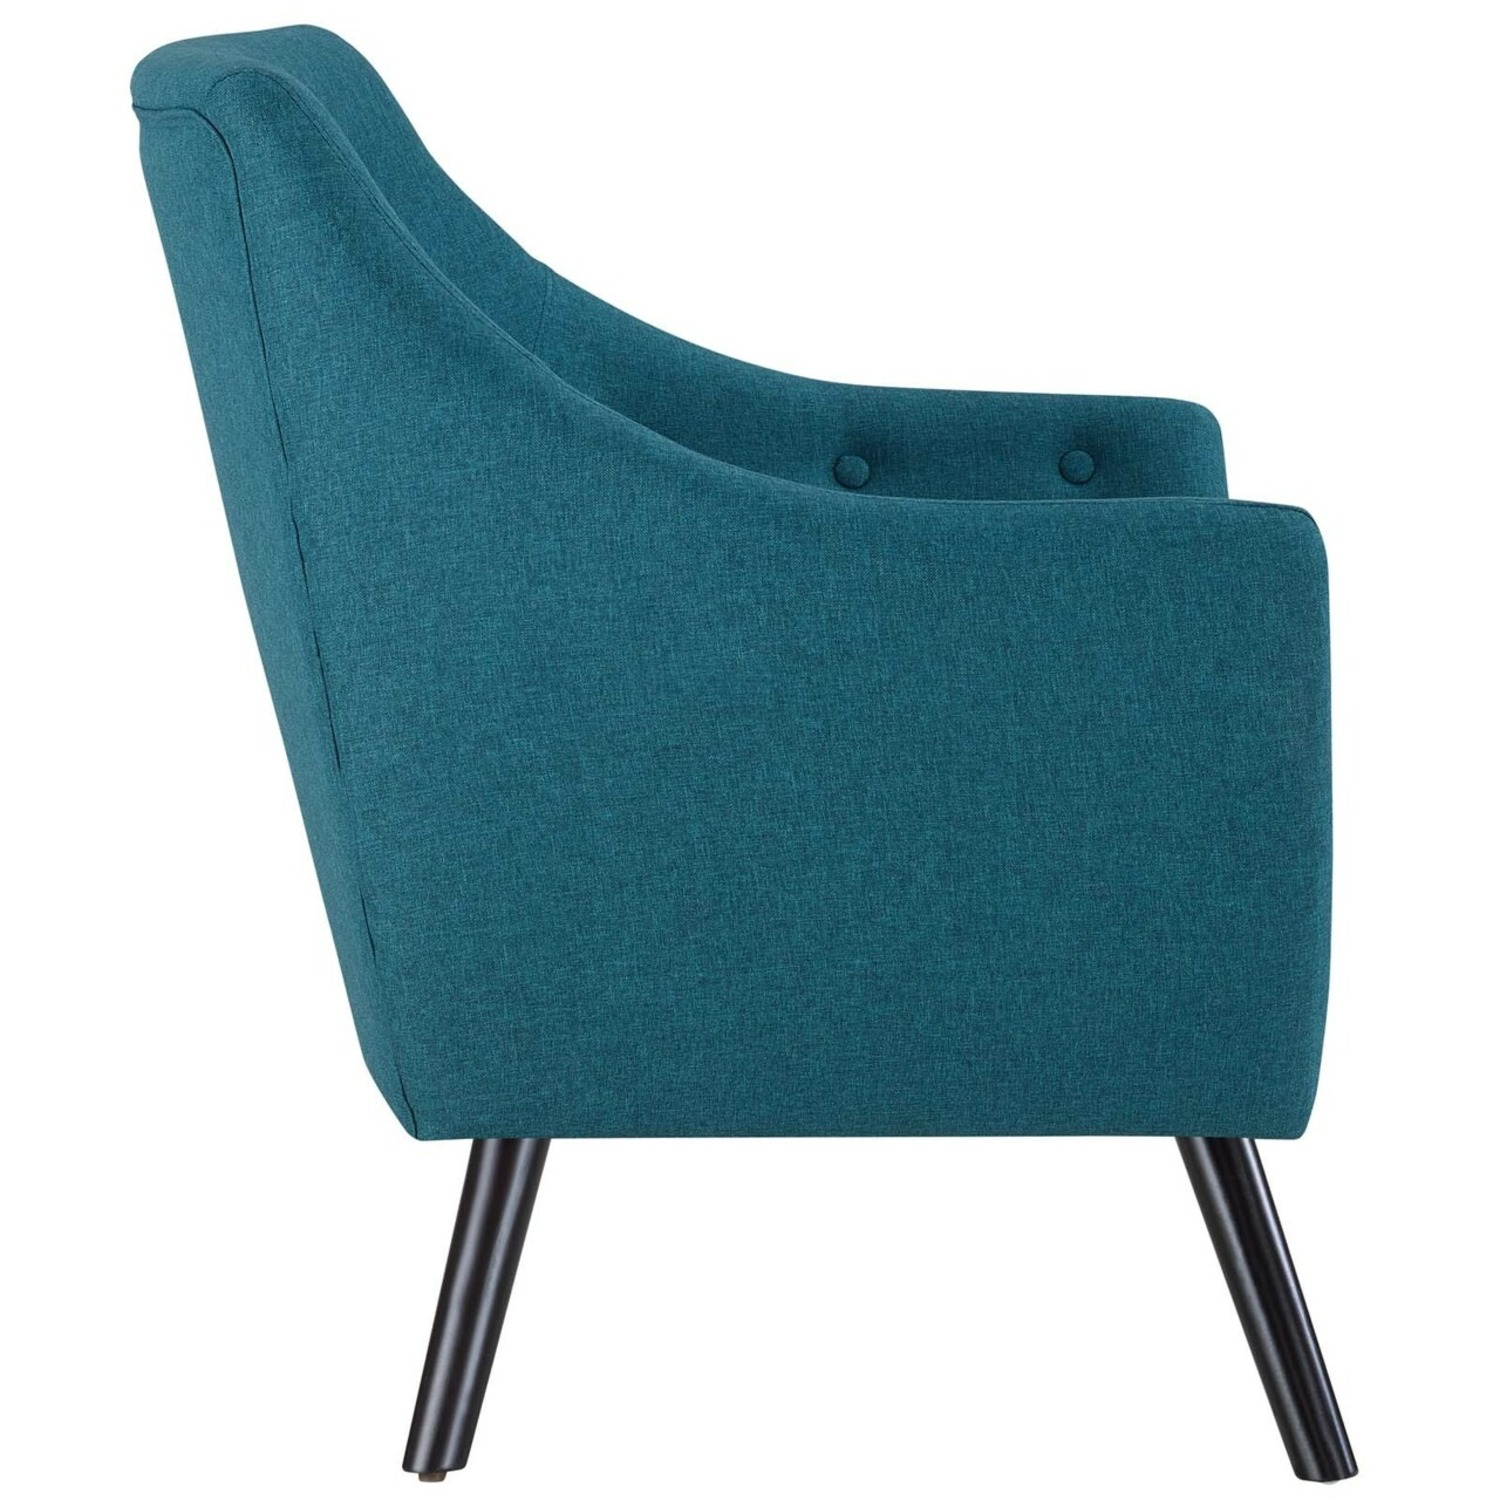 Armchair In Teal Fabric & Tufted Button Upholstery - image-2